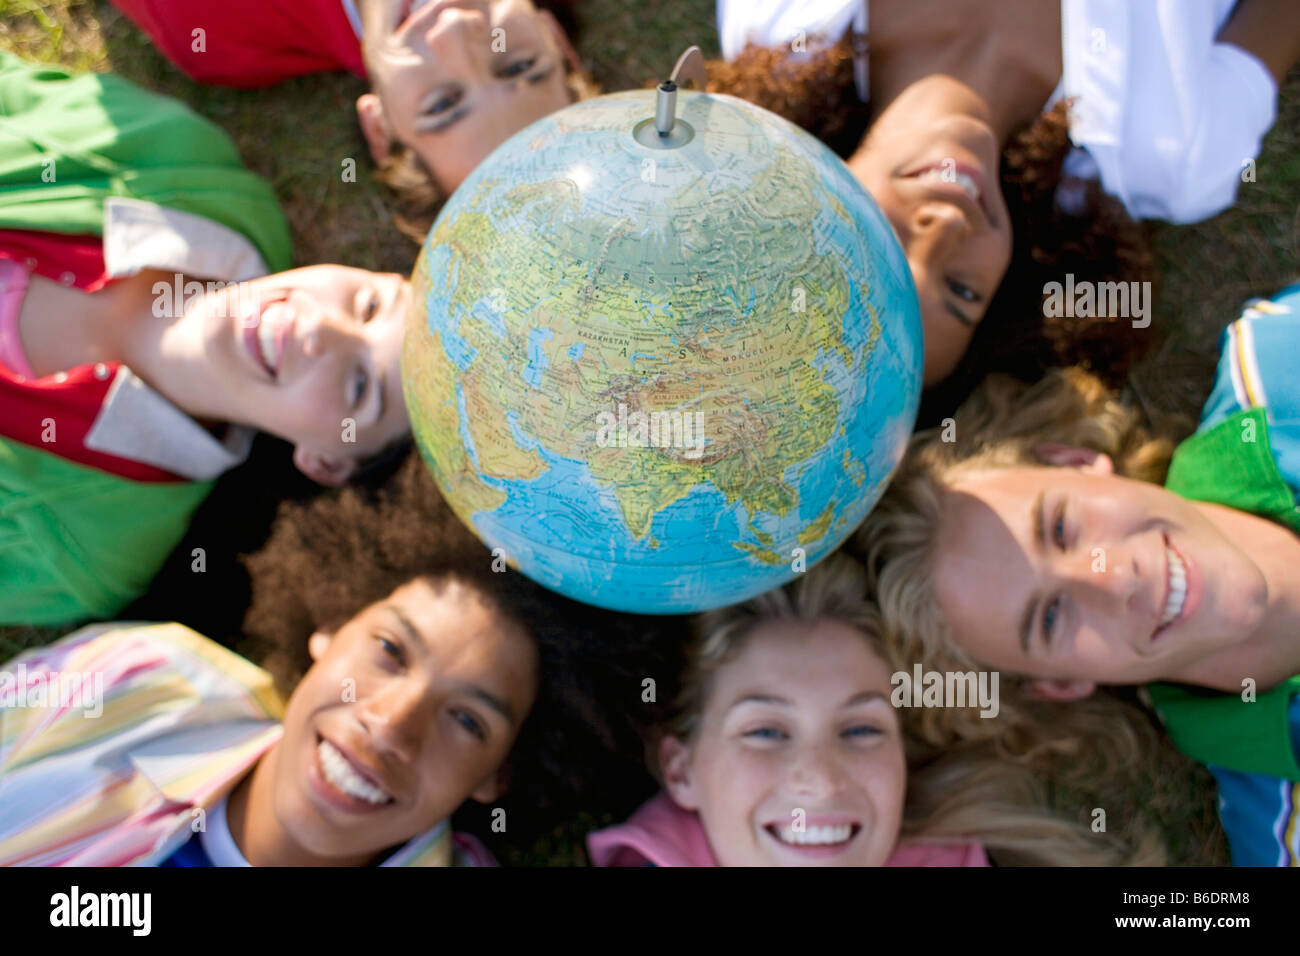 Environmental awareness. Group of friends lying down in a circle with a globe of the Earth resting on their heads. - Stock Image